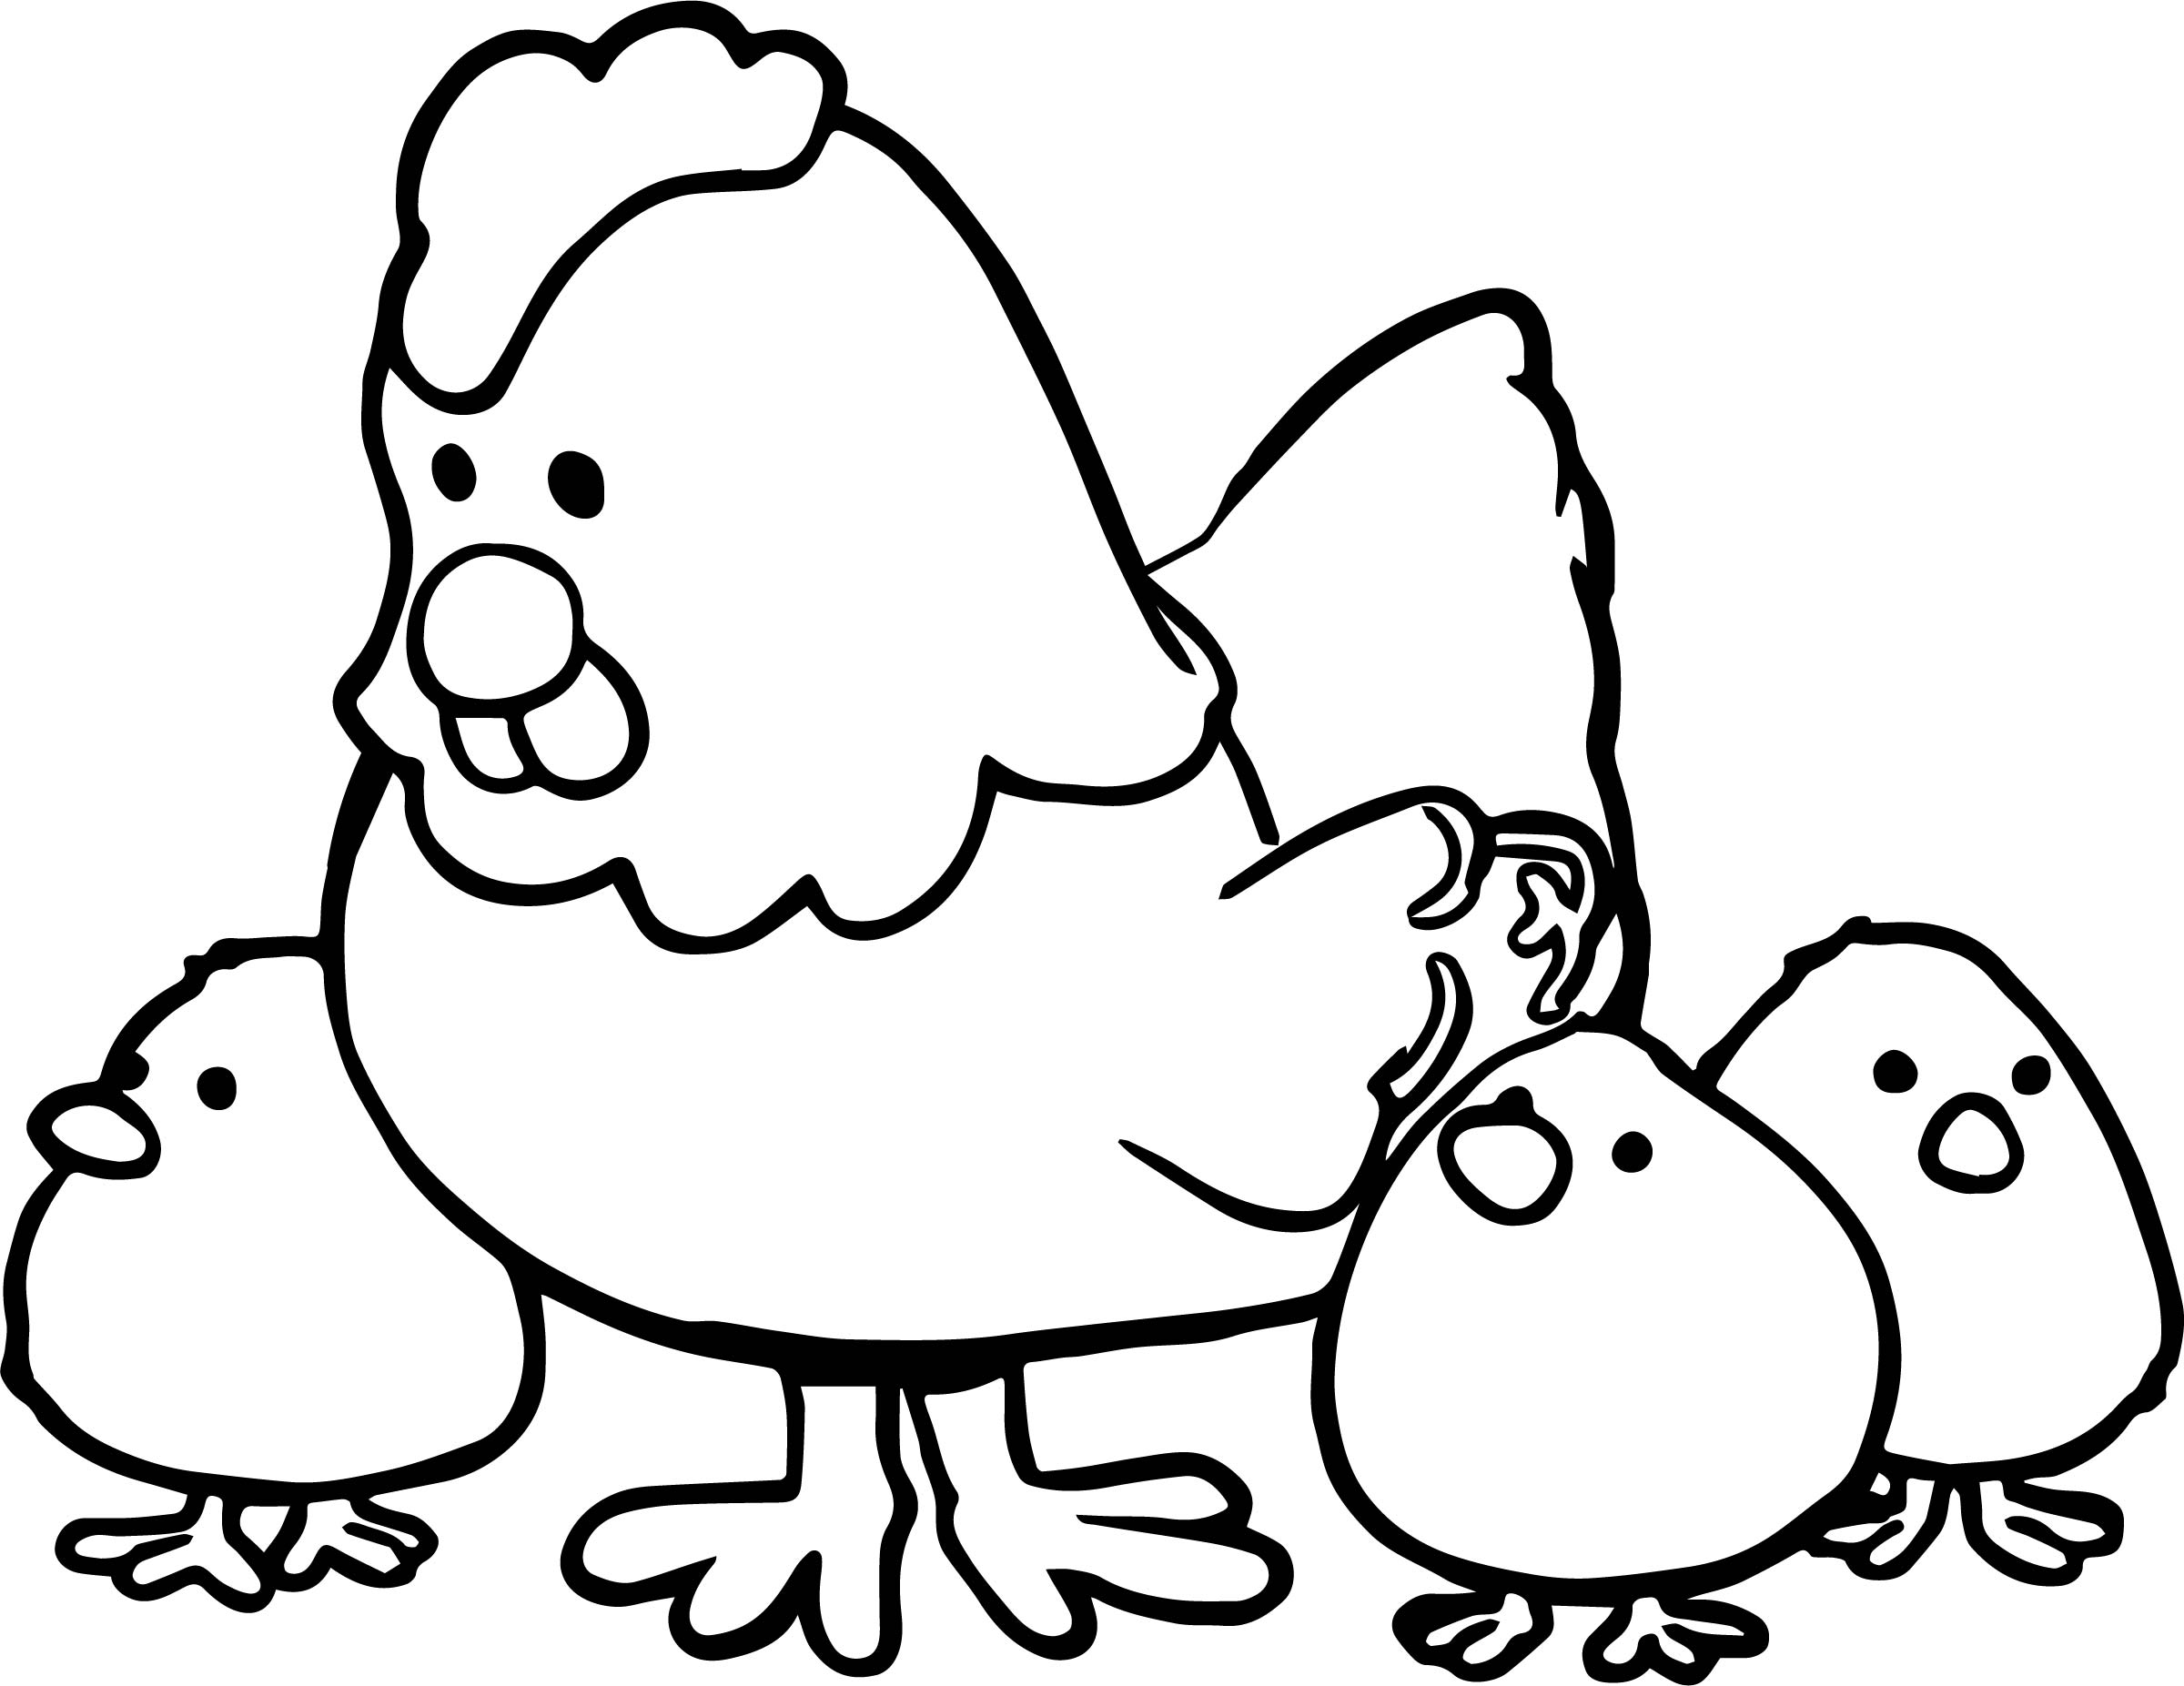 chicken coloring chicken coloring book for preschoolers backyard chickens chicken coloring